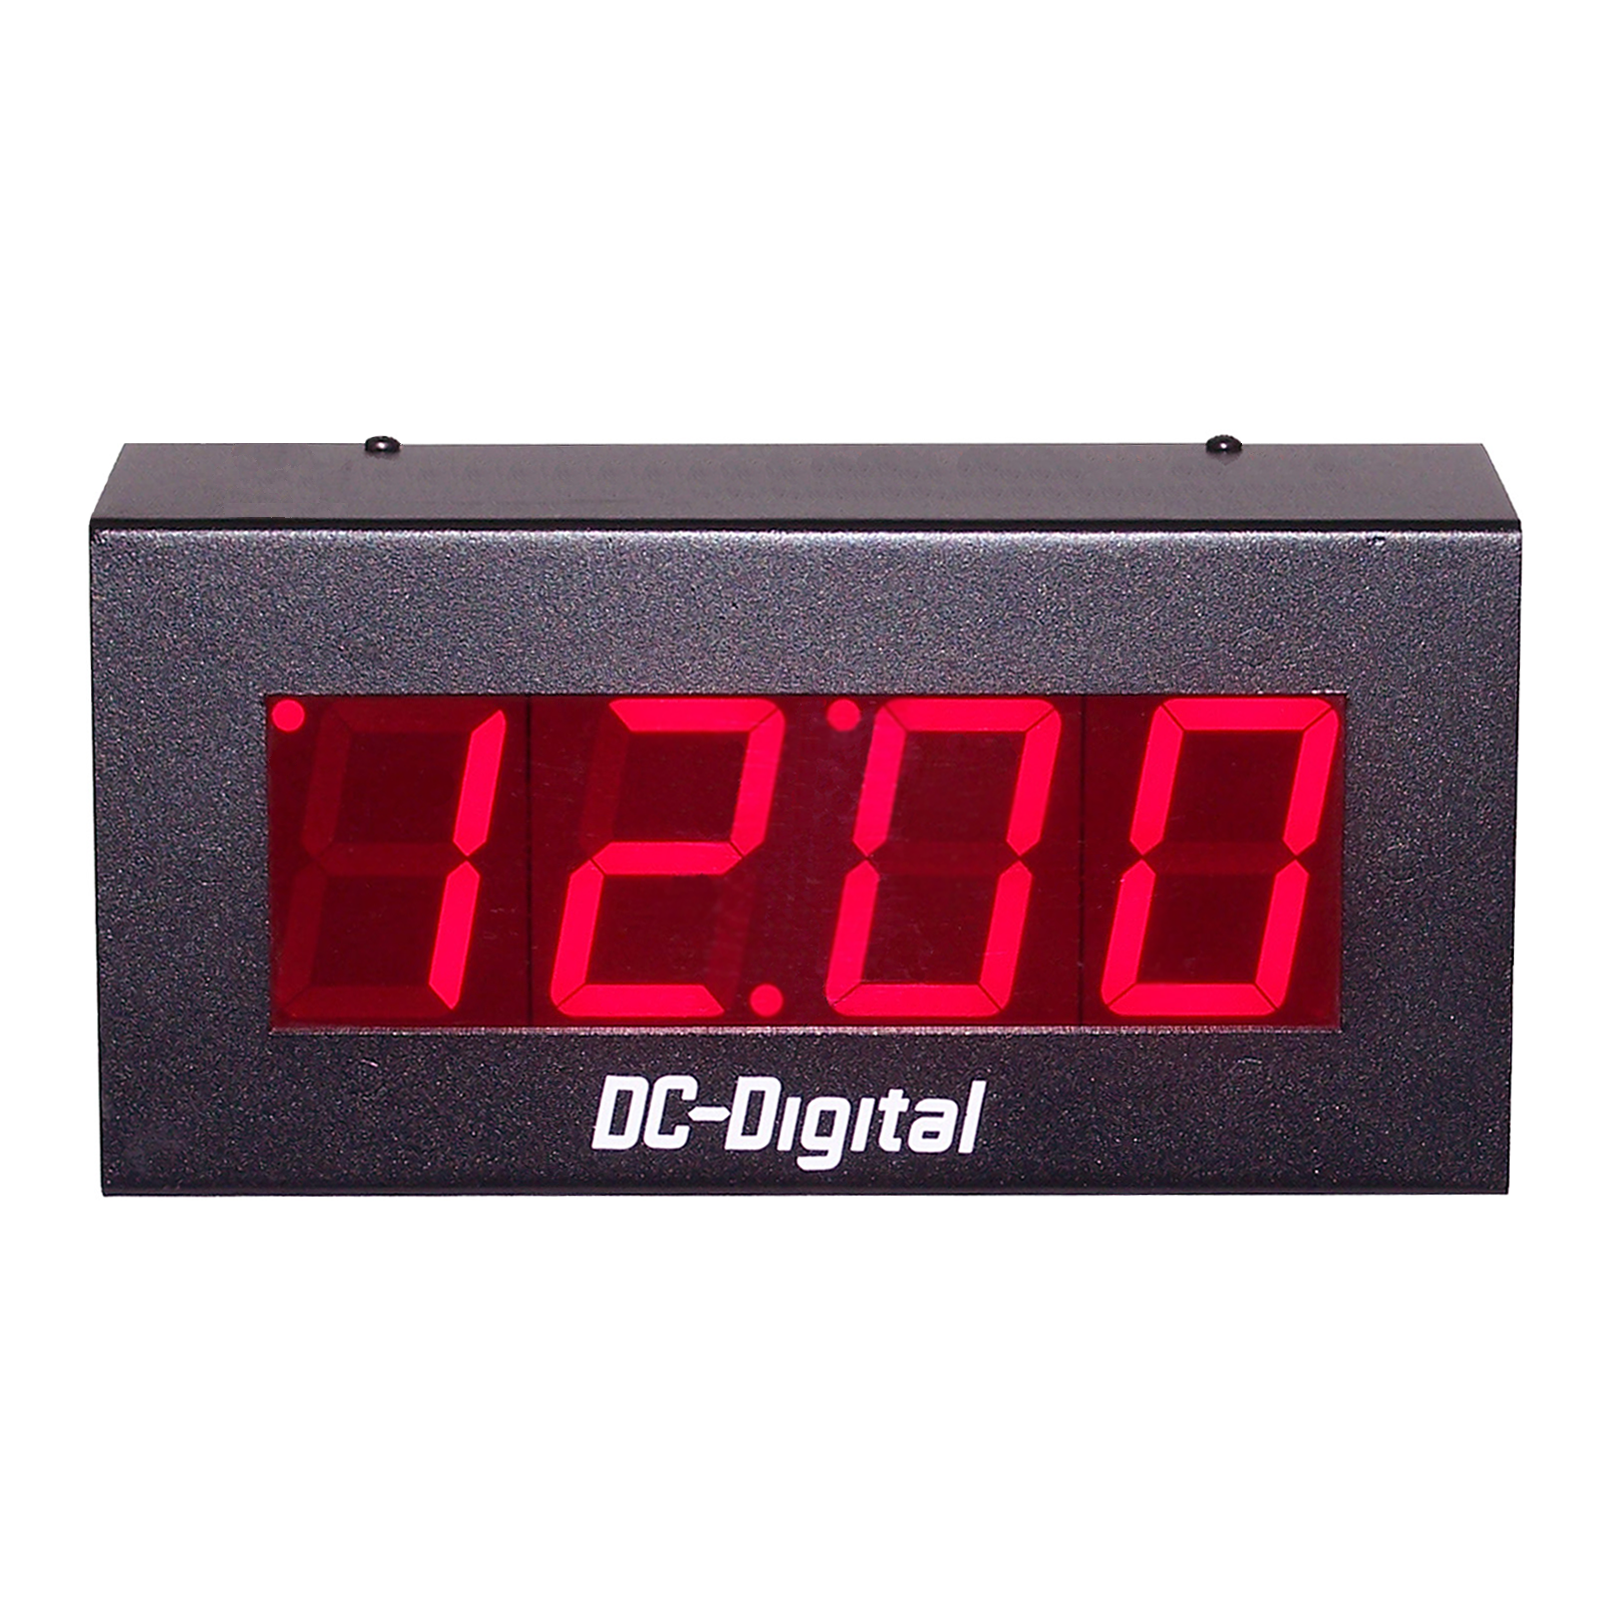 (DC-25A-System) Simplex 59Th Minute Sync  System, Digital Clock, 2 3 Inch  Digits, 24VAC